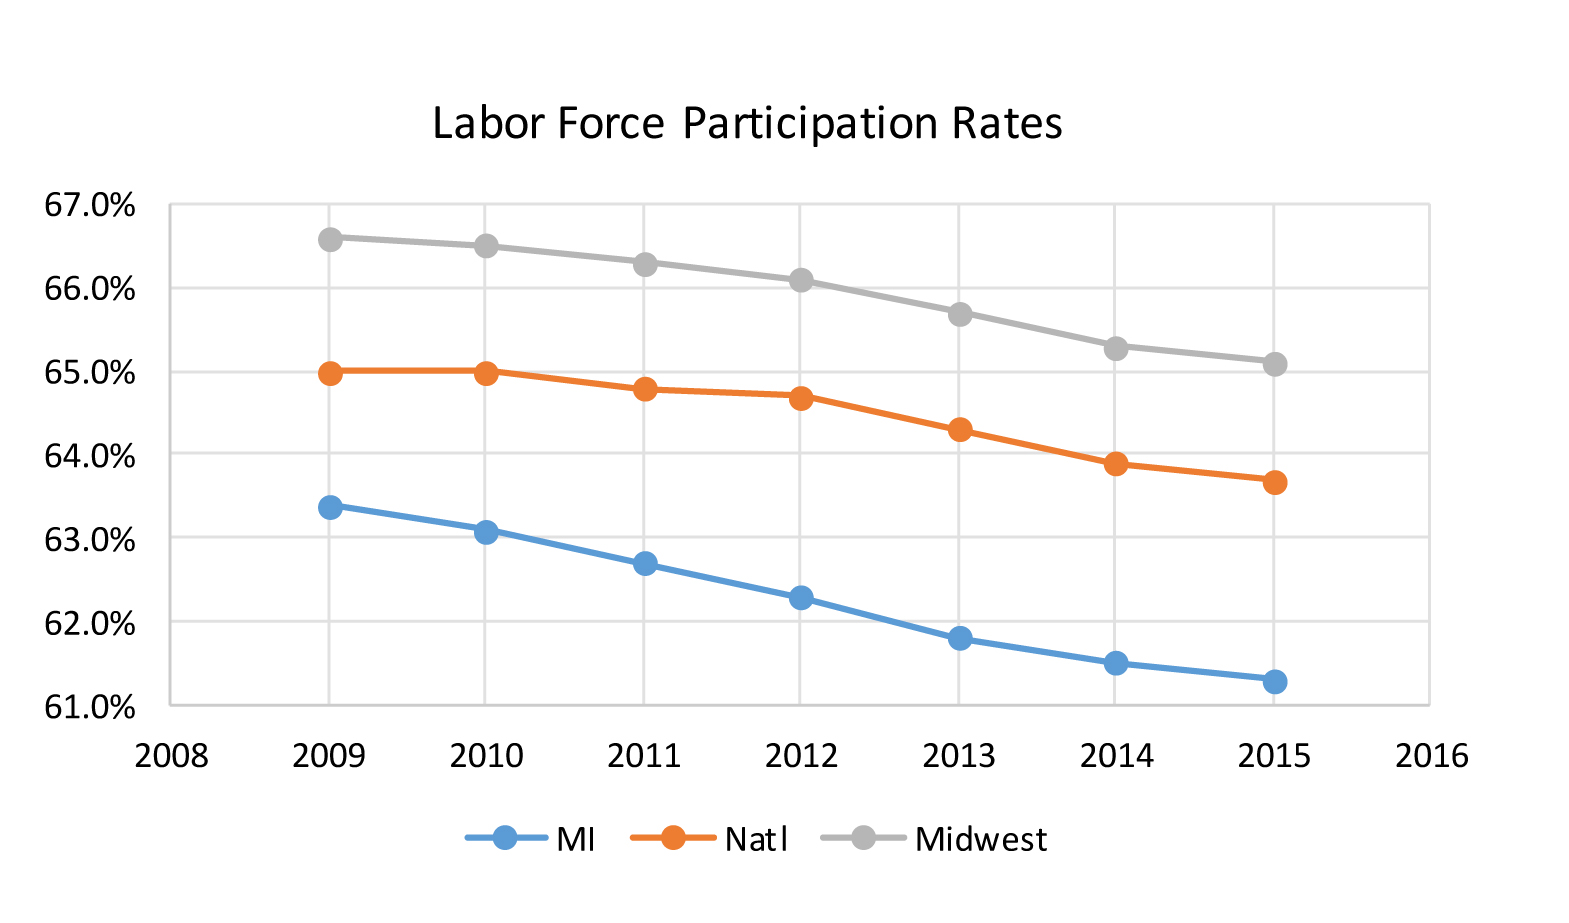 Labor Force Participation Rates graph